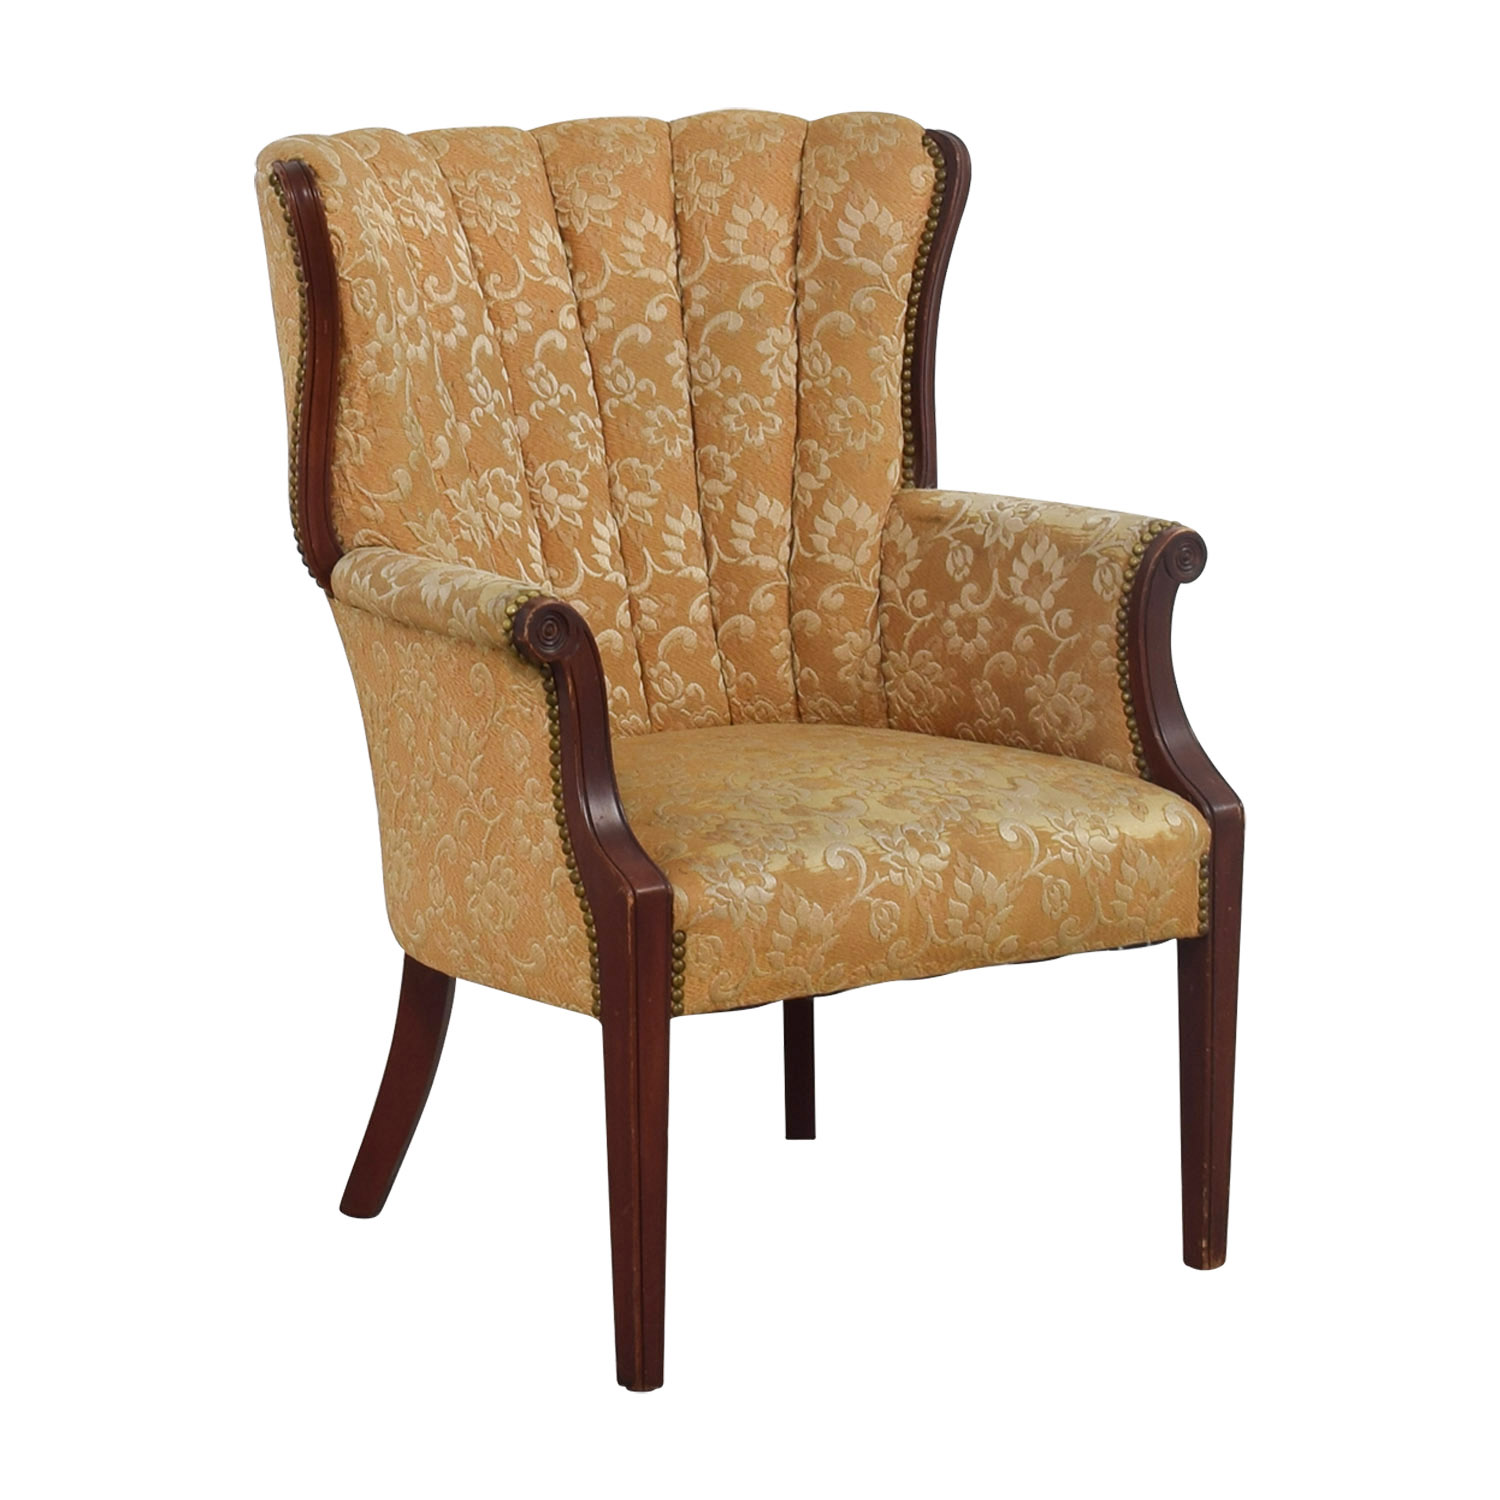 Used Wingback Chairs 87 Off Antique Indigo Yellow Wingback Accent Chair Chairs